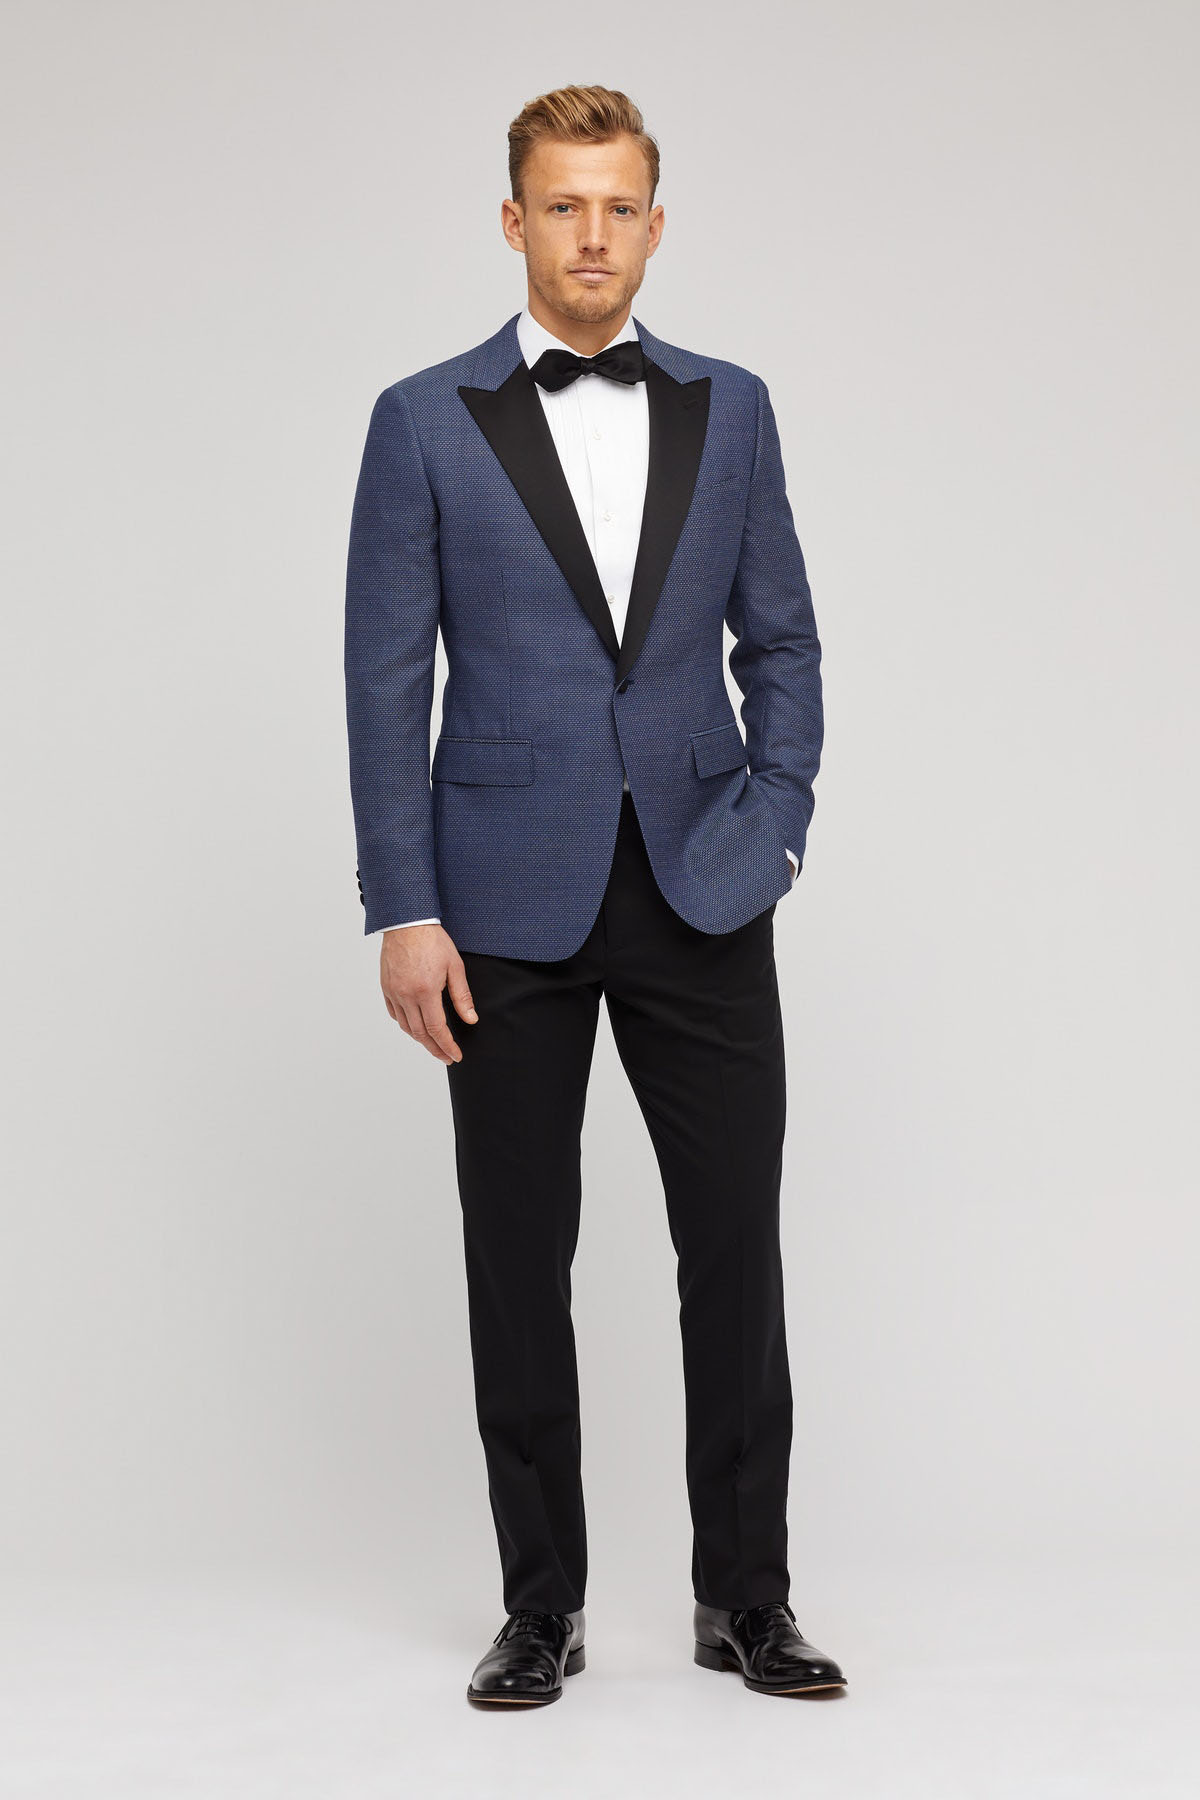 5da36092 Bonobos: Better Fitting, Better Looking Men's Clothing & Accessories